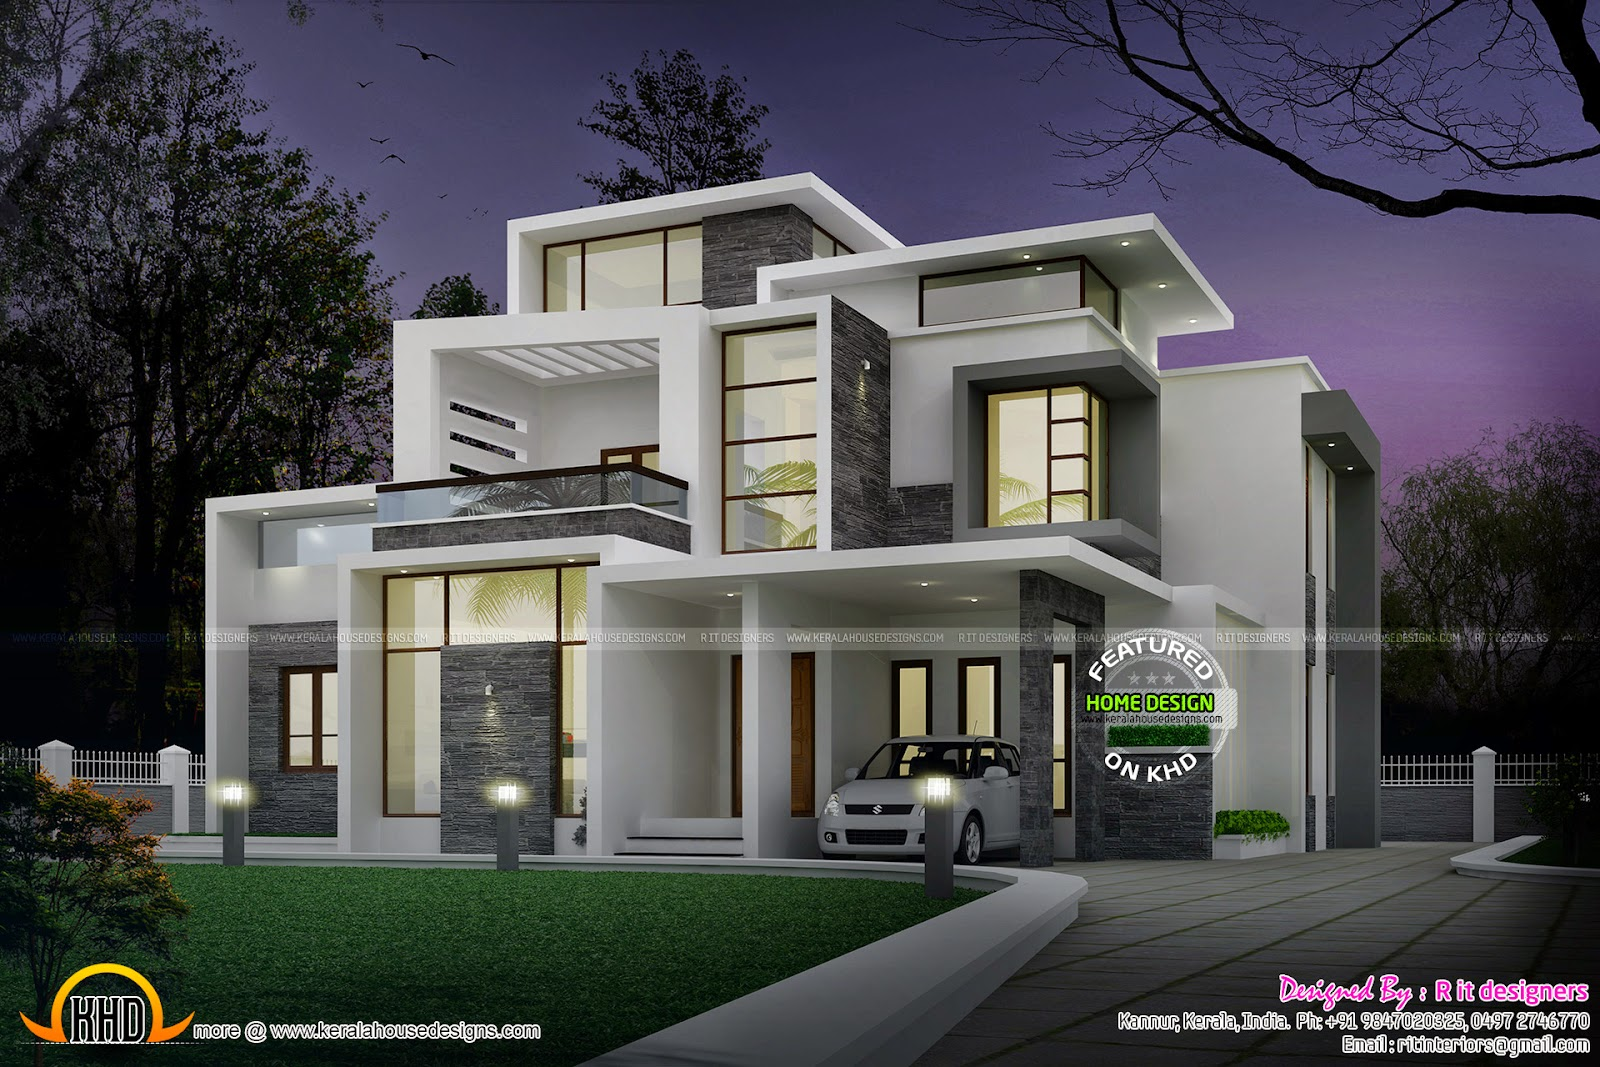 Grand contemporary home design kerala home design and for Modern home design plans